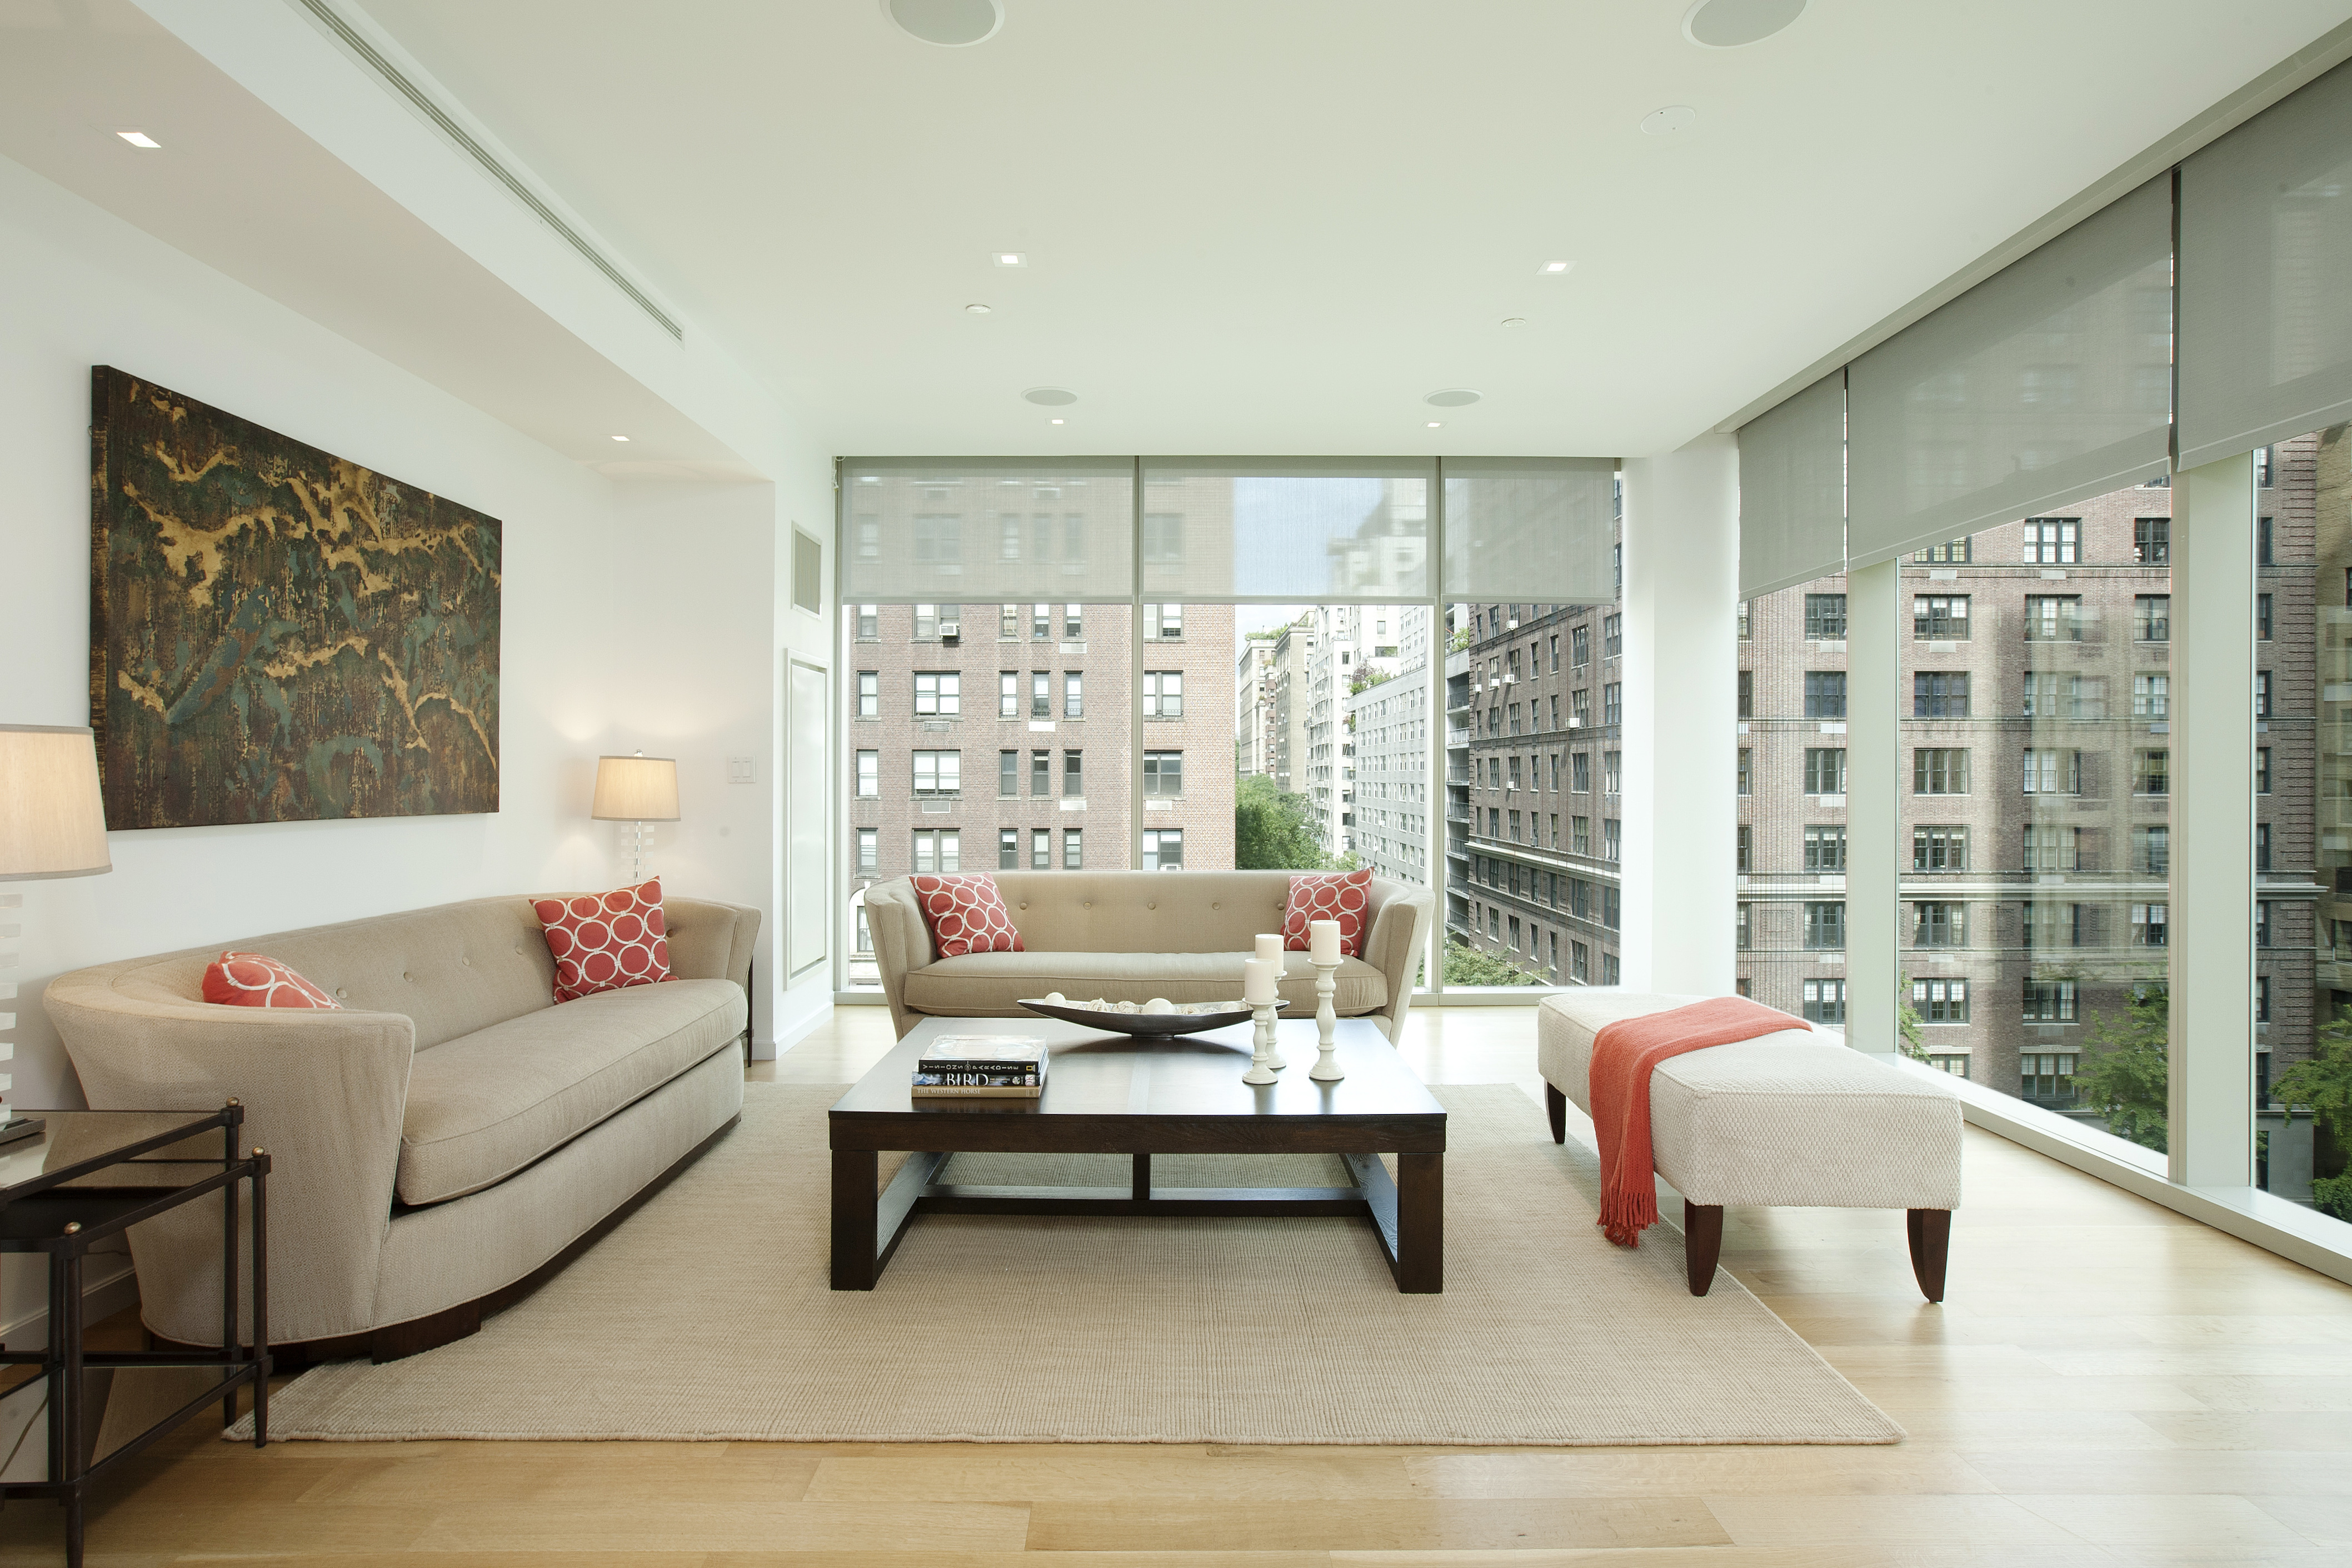 This modern and stunning 4 bedroom, 3.5 bathroom duplex is 2 blocks from Central Park!  Enter the home via direct elevator access onto the 6th floor and be instantly drawn to the dramatic floor-to-ceiling windows which offer an abundance of air and light. This level features a spacious corner living room overlooking the picturesque Northern and Western views over Park Avenue and 87th Street. The top of the line kitchen is outfitted with Corian countertops, Poggenpohl cabinetry, Miele and Sub-Zero appliances. In addition to the formal dining room, the eastern part of this level features a flexible 4th bedroom with en-suite bathroom. The spectacular staircase of frosted glass mounted on cascading white risers leads to the 7th floor upper level, also accessible by elevator. The bright corner master suite features a luxurious spa bathroom adorned with Dornbracht and Poliform fixtures flanked in white Rhino marble walls and floors. The generously sized 2nd and 3rd bedrooms, each with an abundance of closet space are adjoined by a tastefully designed white marble bathroom. This home is equipped with smart home technology system, central heating and air and full sized laundry room.  1055 Park Avenue is a boutique condominium with only five luxurious residences, offering privacy and white glove services: full-time doorman/concierge, building resident manager, and an exclusive fitness center. Working capital contribution equal to 2 months common charges payable by purchaser.